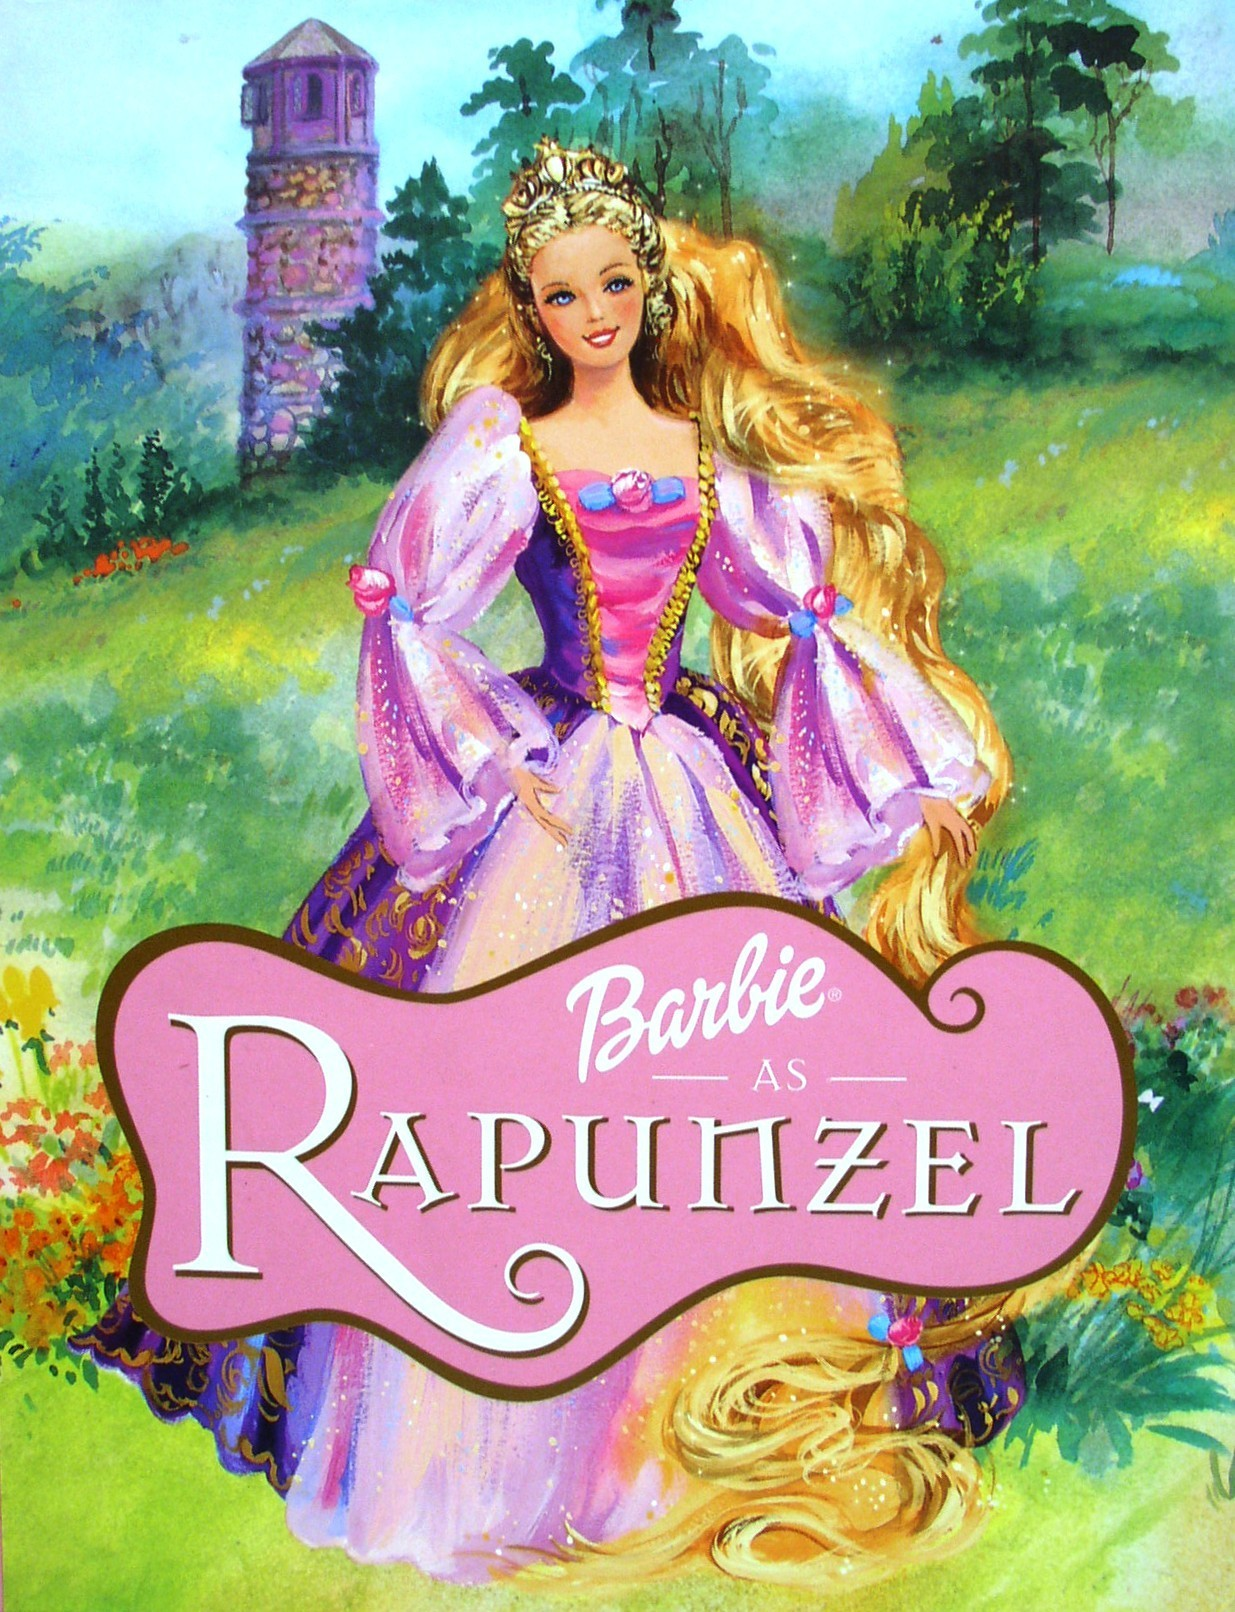 rapunzel story final First edition, 1812: final edition, 1857: rapunzel: rapunzel: once upon a time there was a man and a woman who had long wished for a child but had never received one.